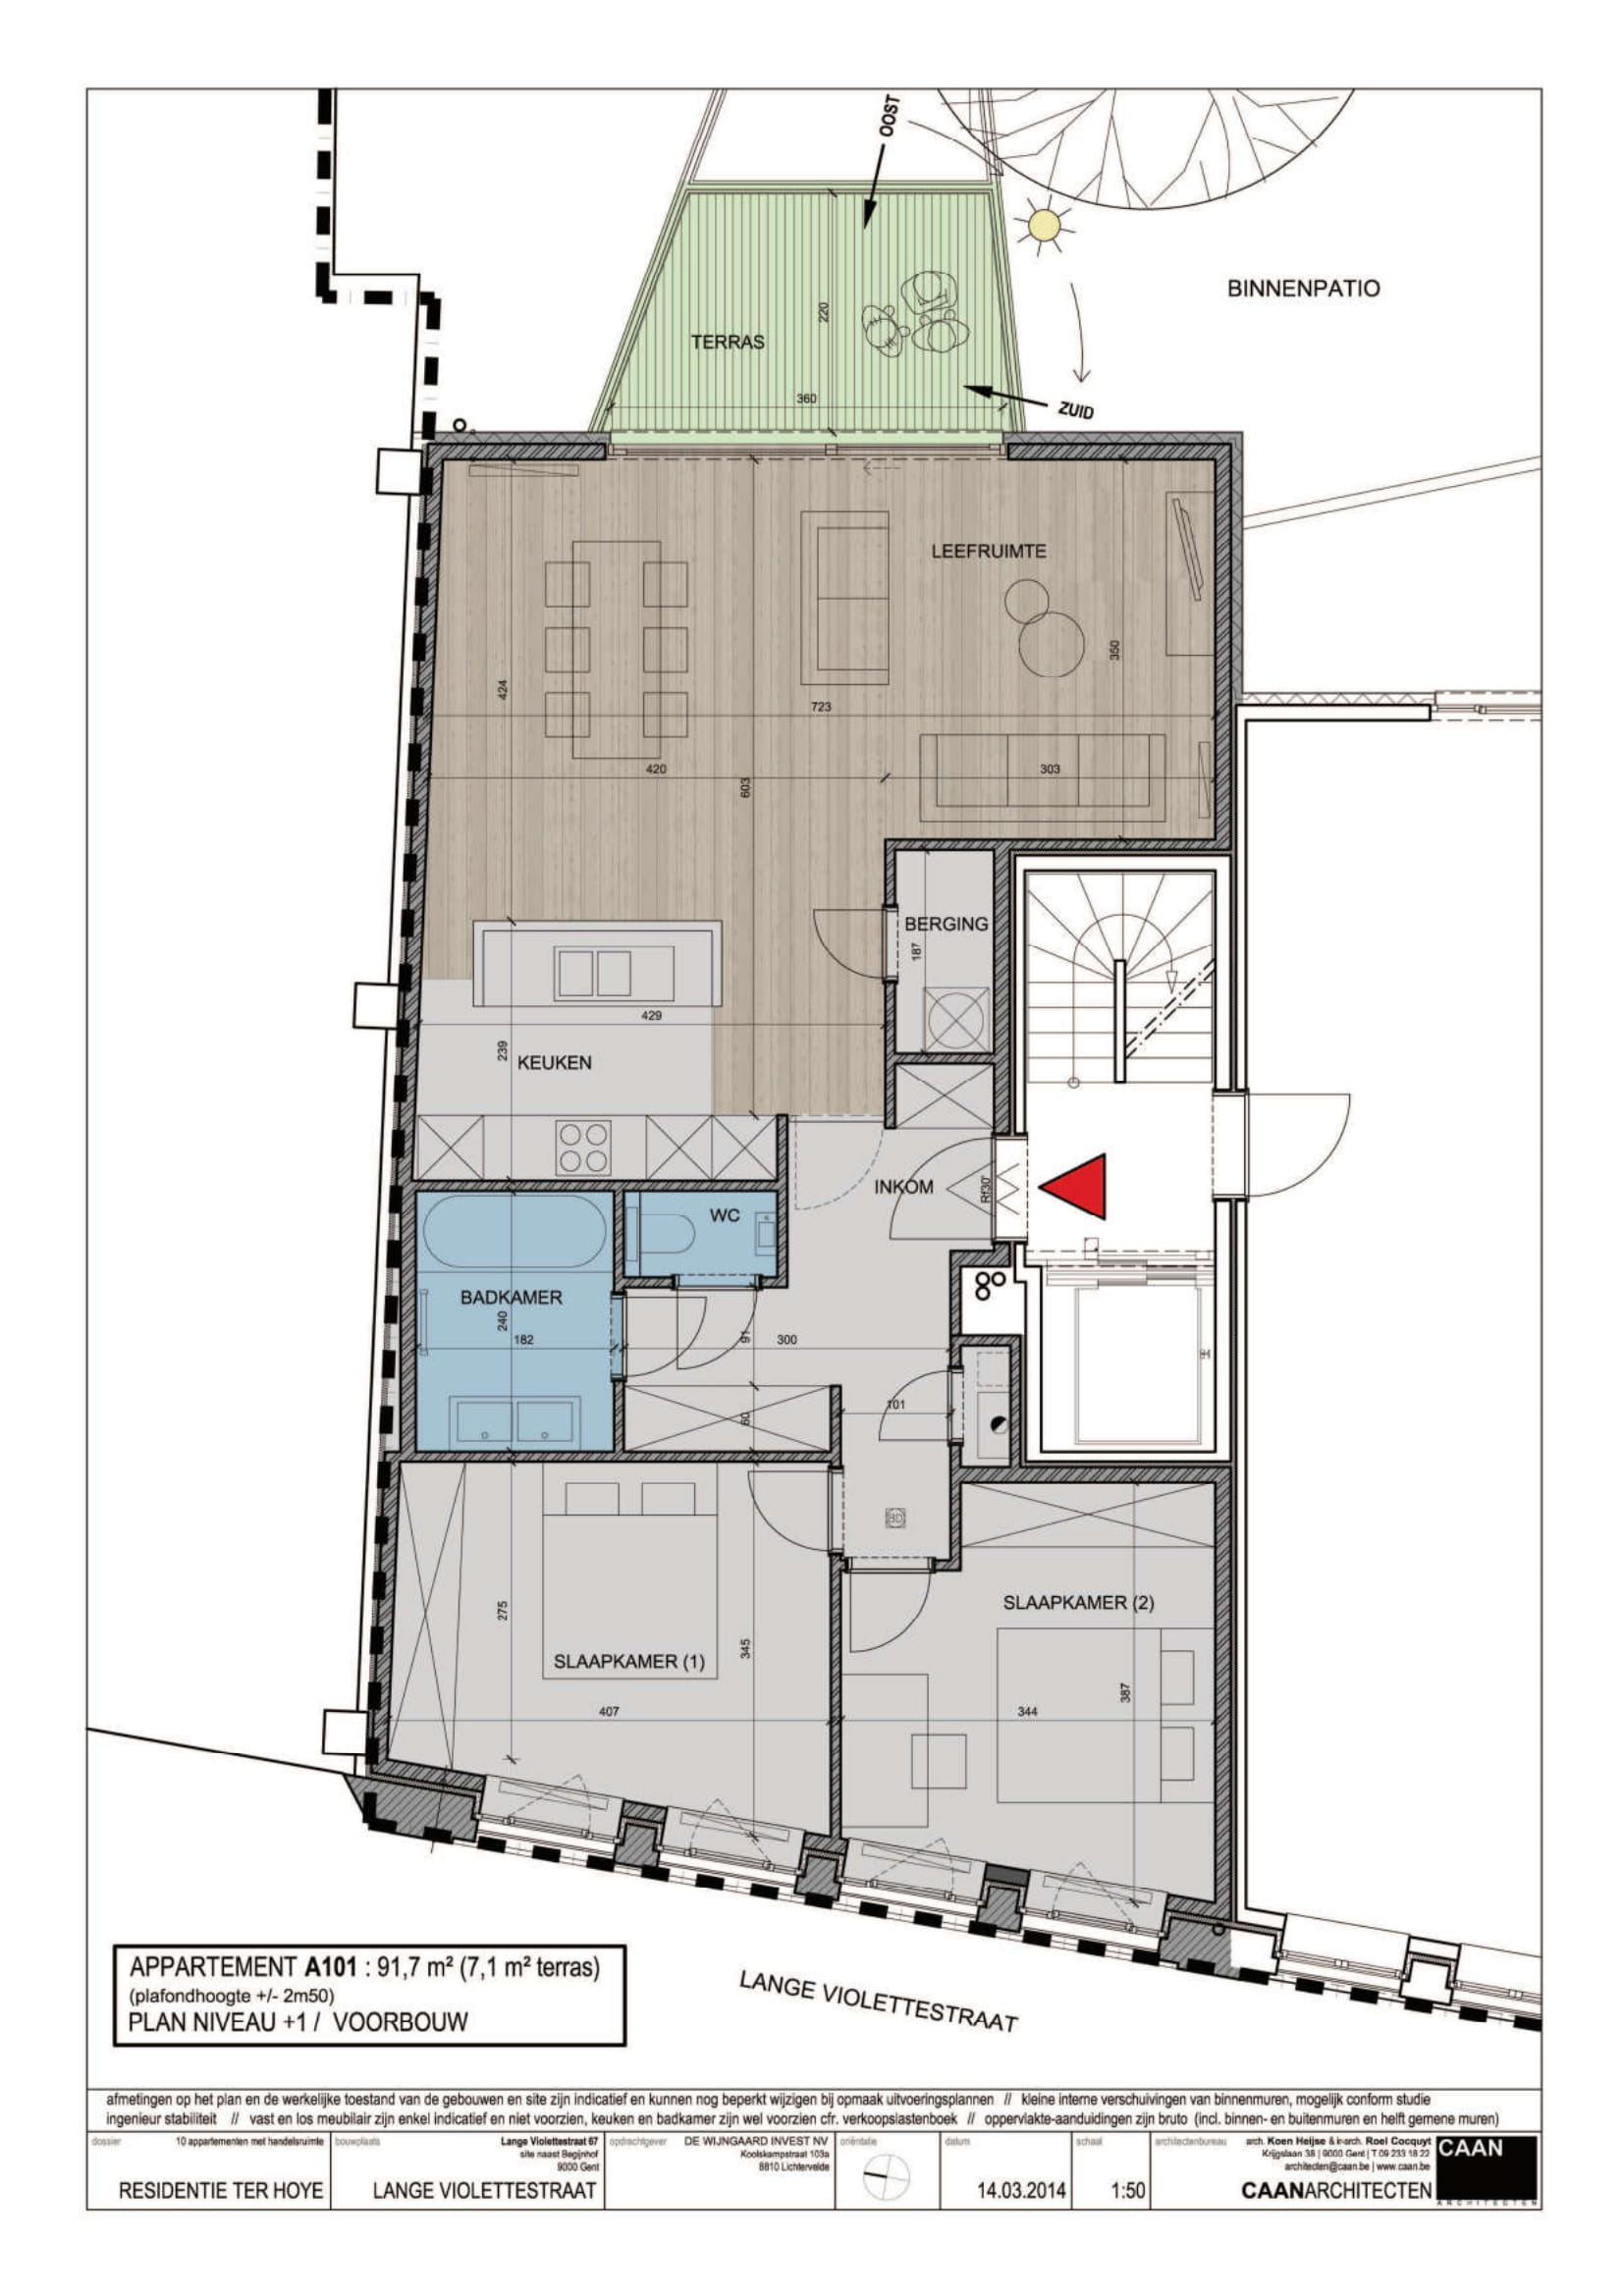 furnished business apartment A001 layout